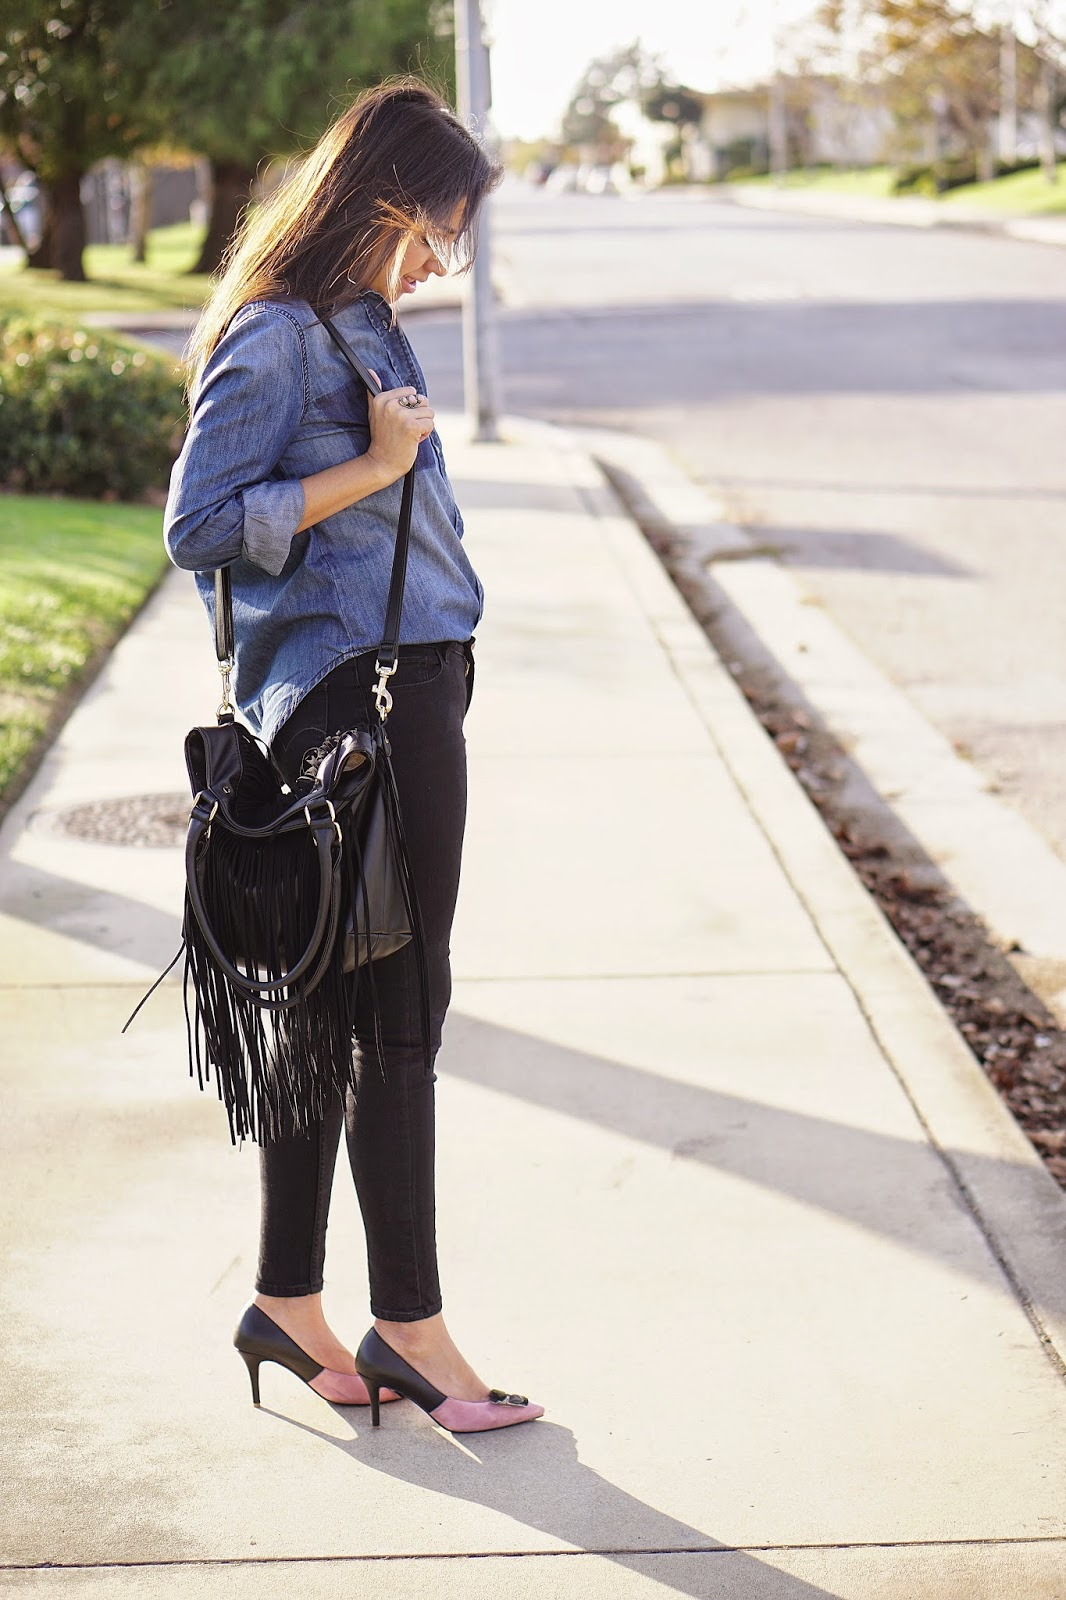 Jean Shirt, Joe Fresh, Joe Fresh Jean Shirt, JCPenney, Levis, Levis 535 Black Jeggings, Anna Xi Eye Heels, Deux Lux Fringe Tote, Deux Lux Joplin Large Tote, Eyes On Me Heels, How To Wear A Jean Shirt